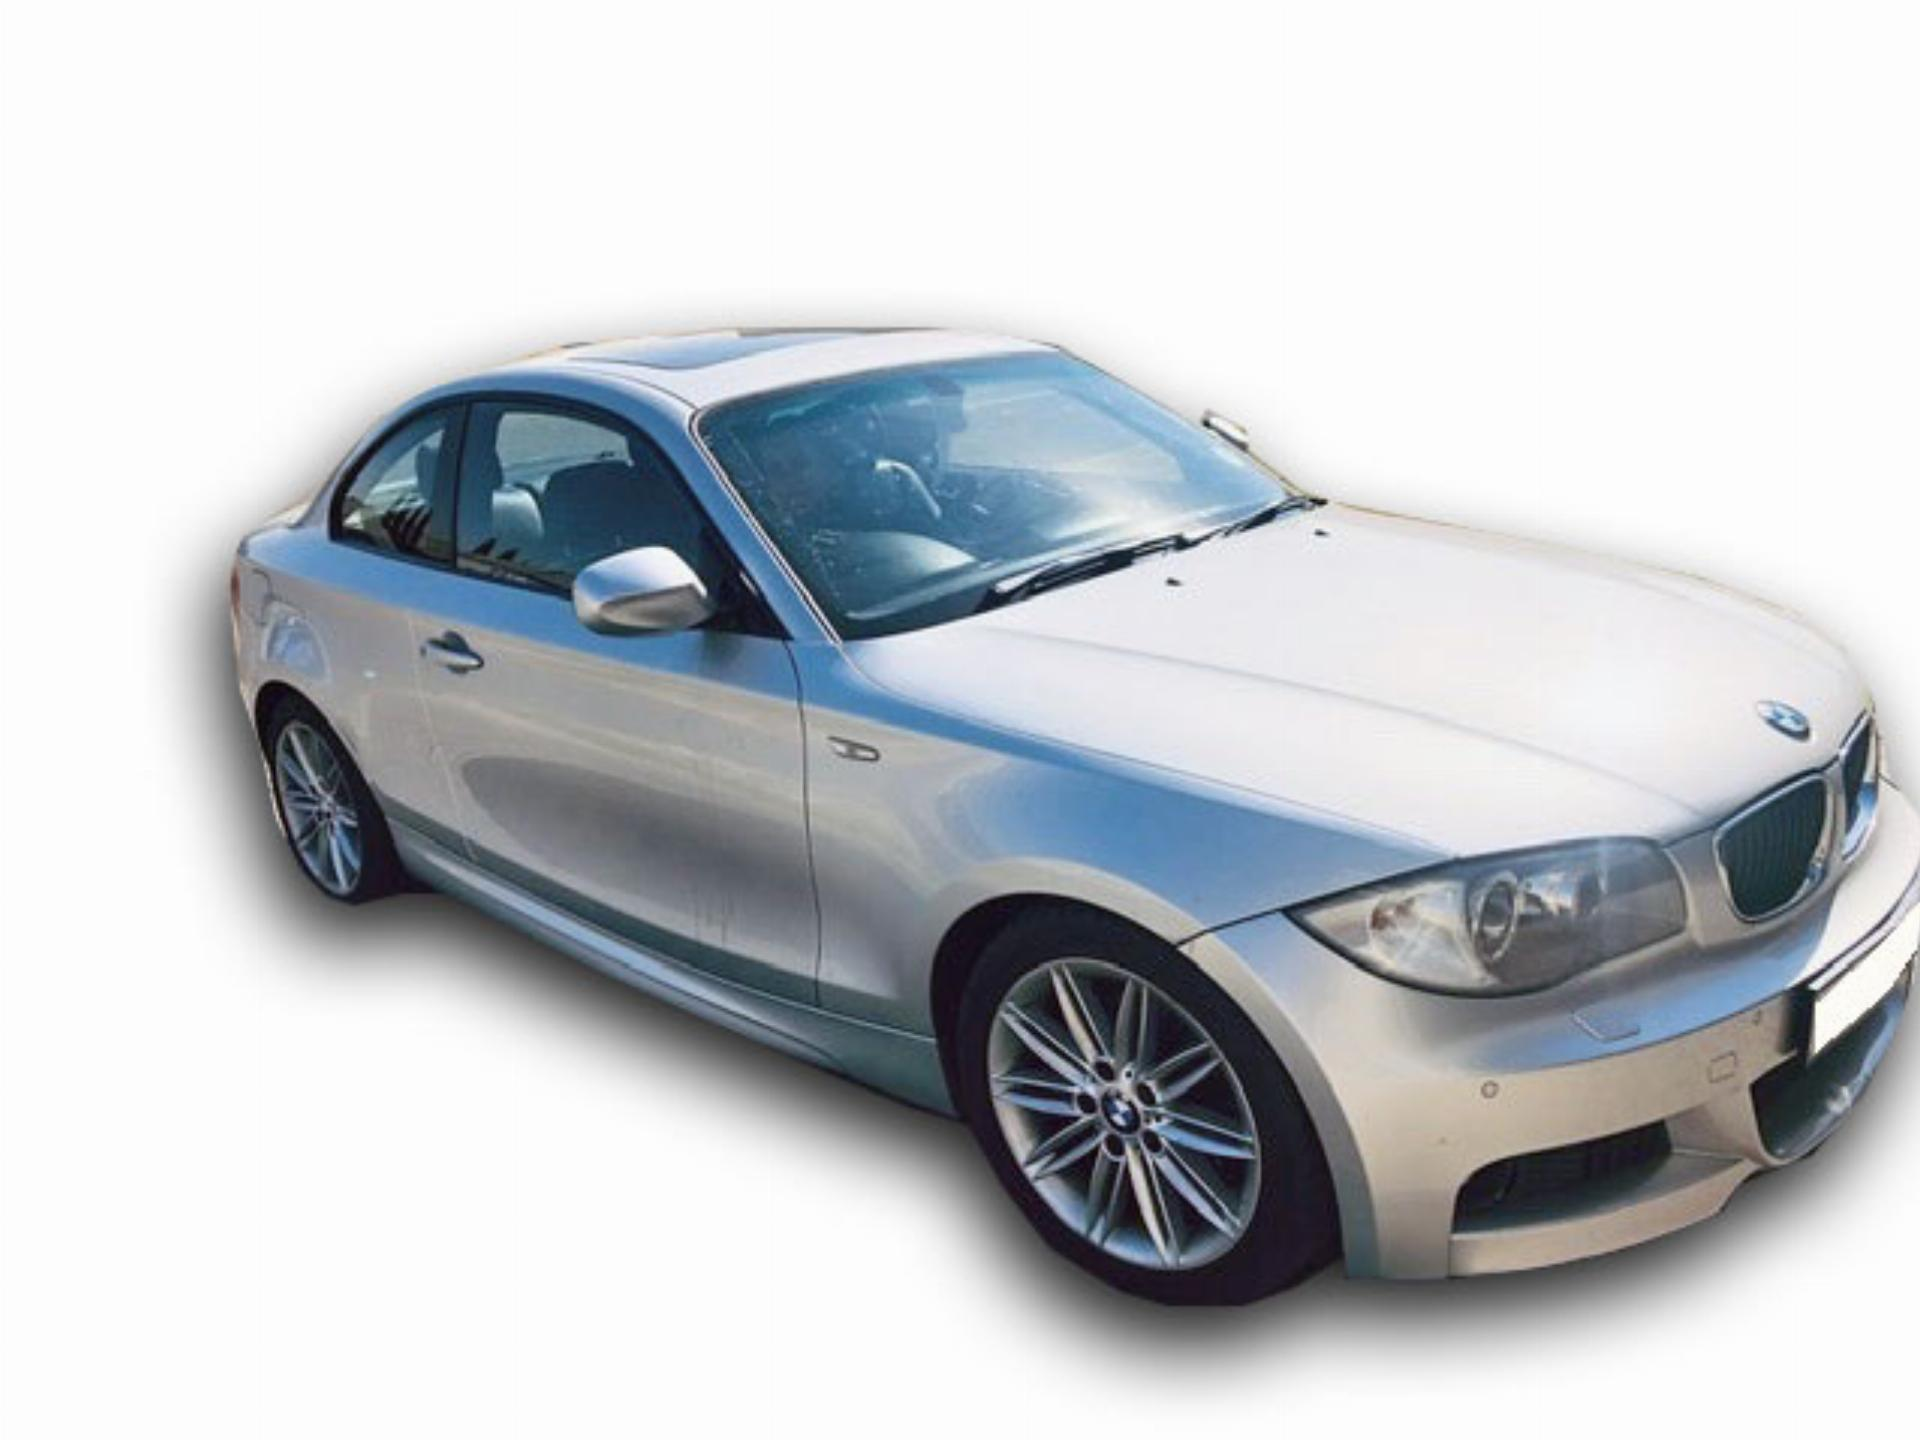 BMW 1 Series 125I Sport Coupe